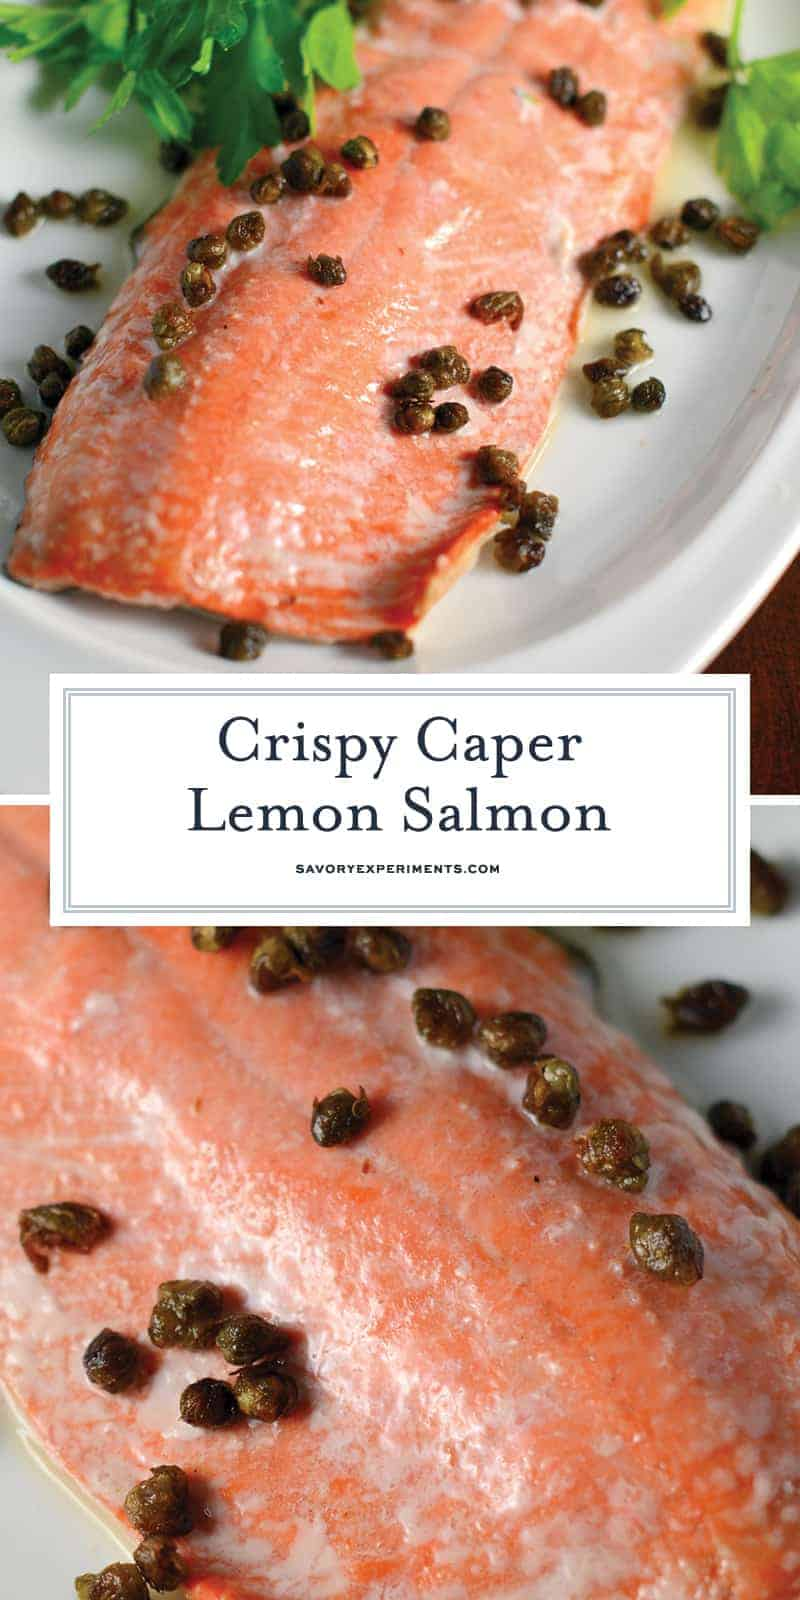 Crispy Caper Lemon Salmon is one of the best healthy salmon recipes. This lemon salmon is quick, easy and healthy! Crispy capers add texture sophistication to this easy weeknight meal. #bakedsalmon www.savoryexperiments.com